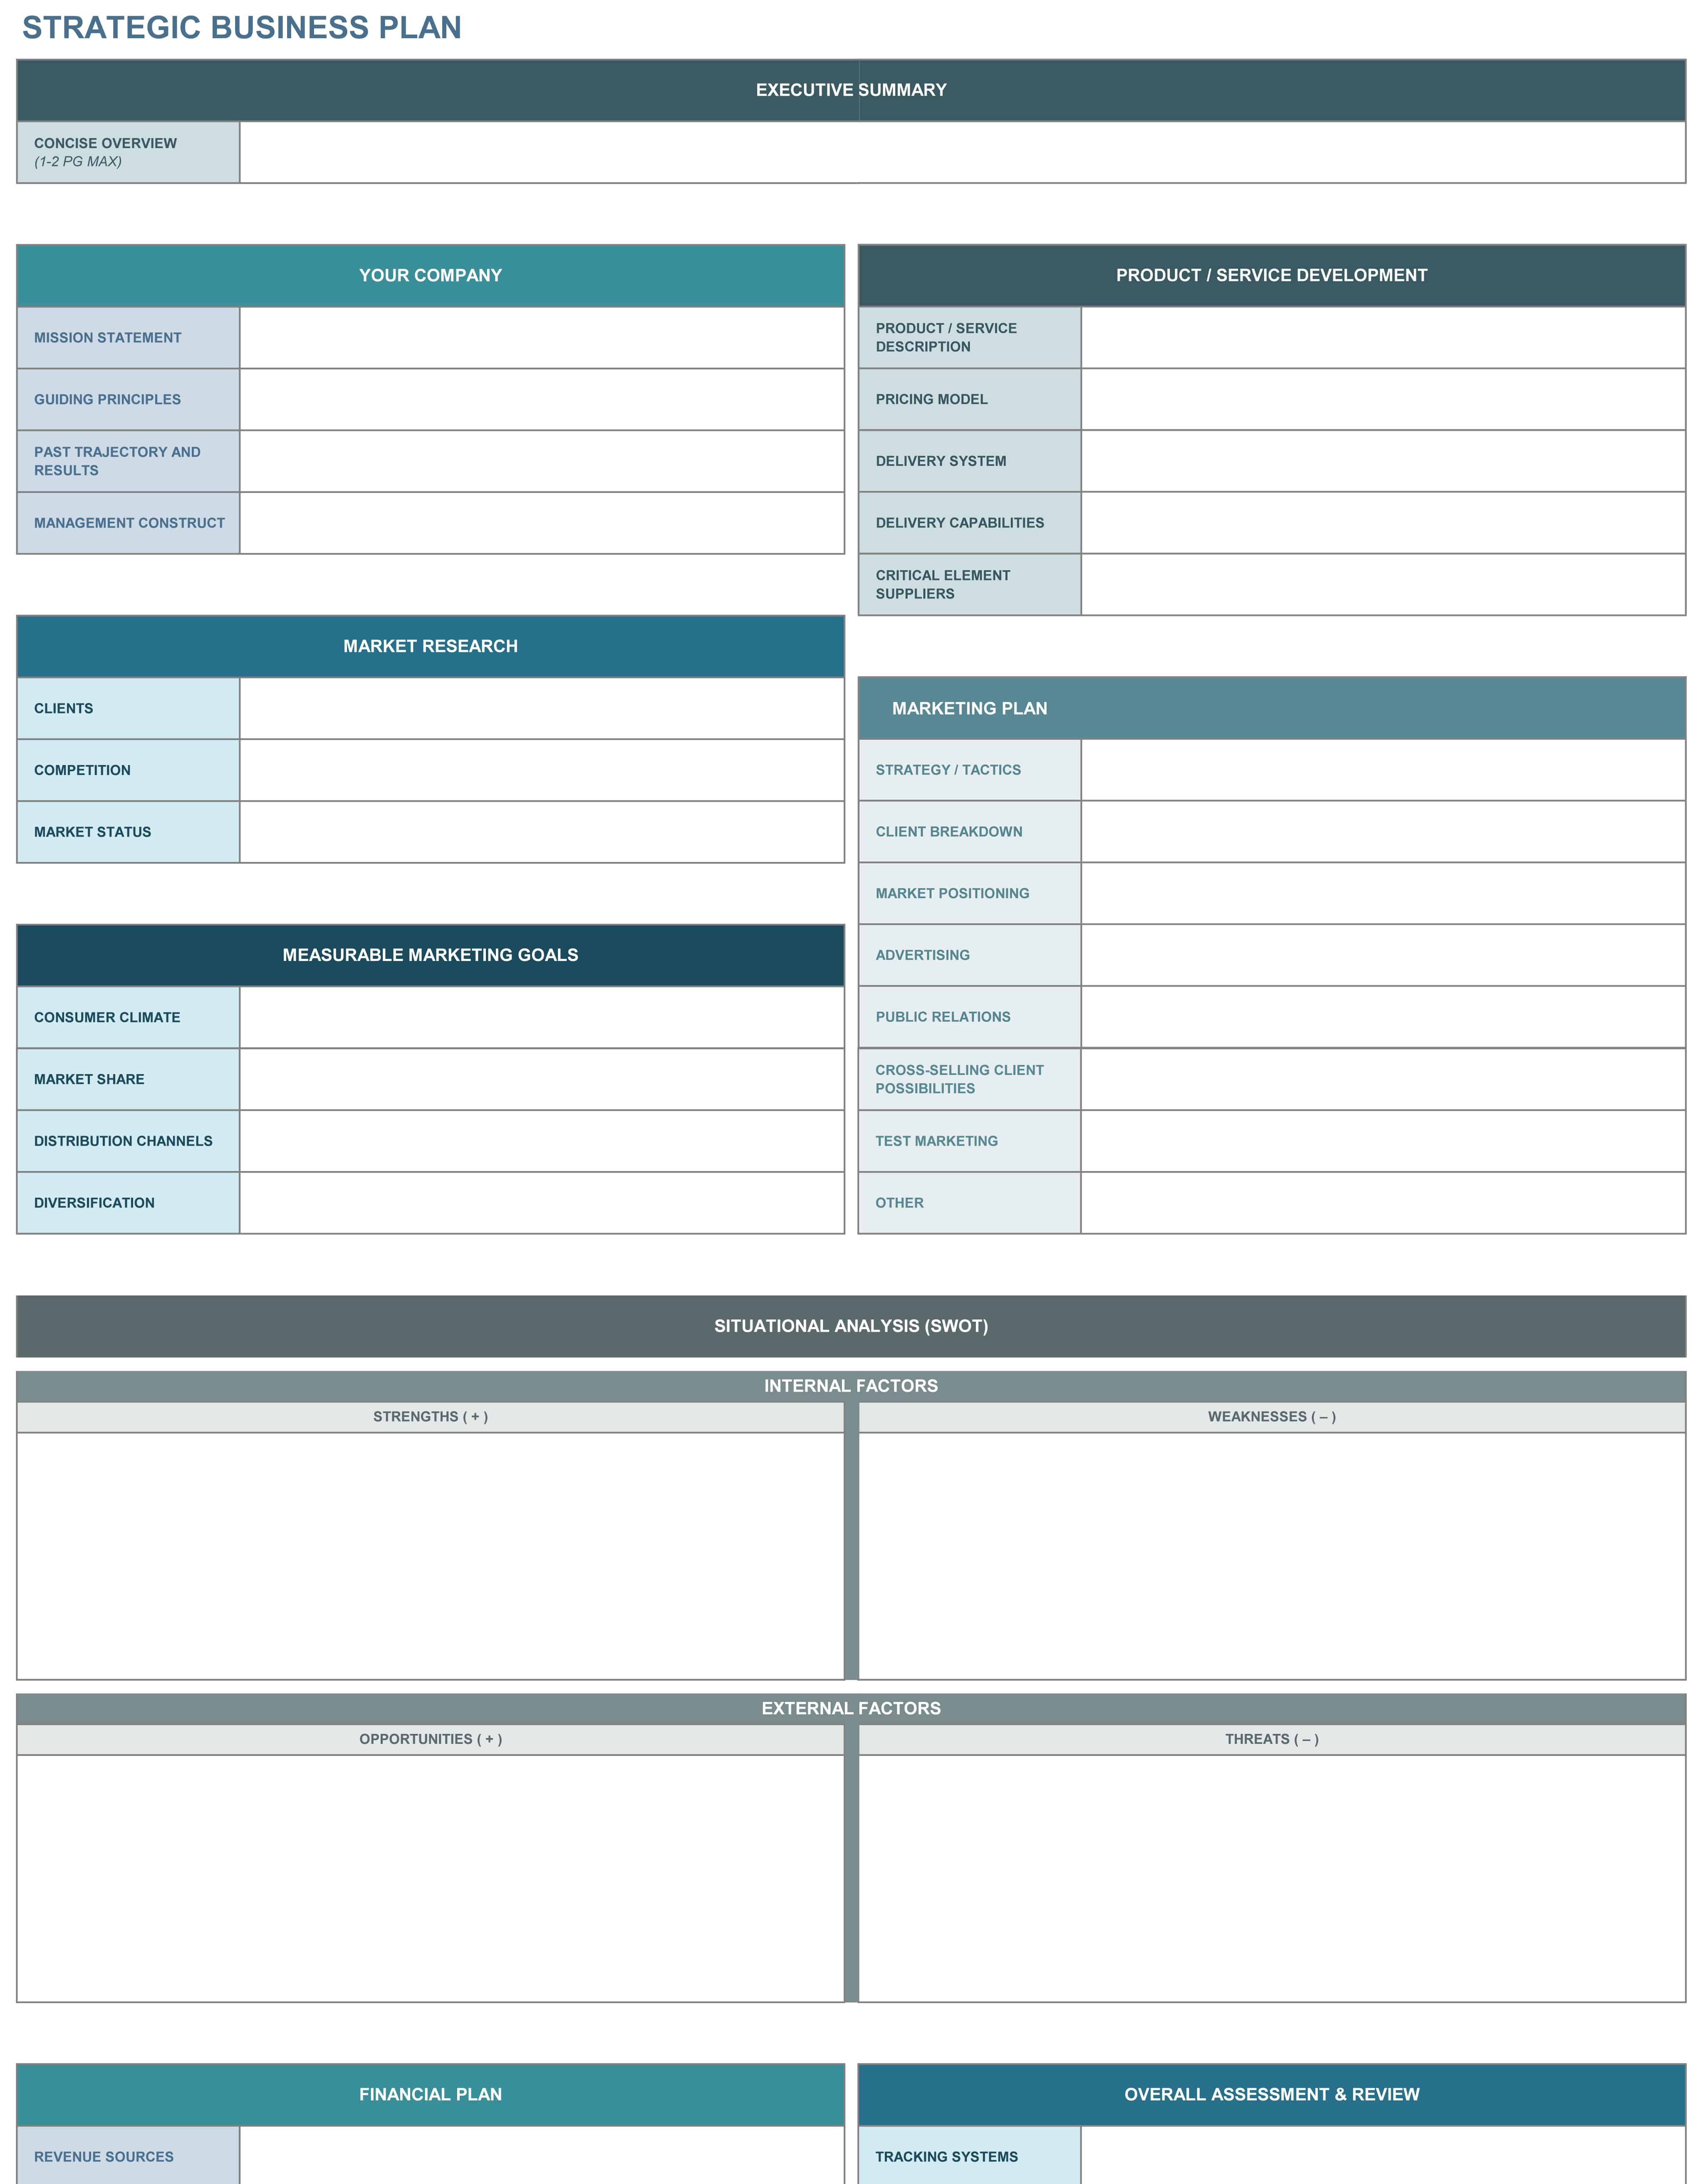 strategic business plan excel template